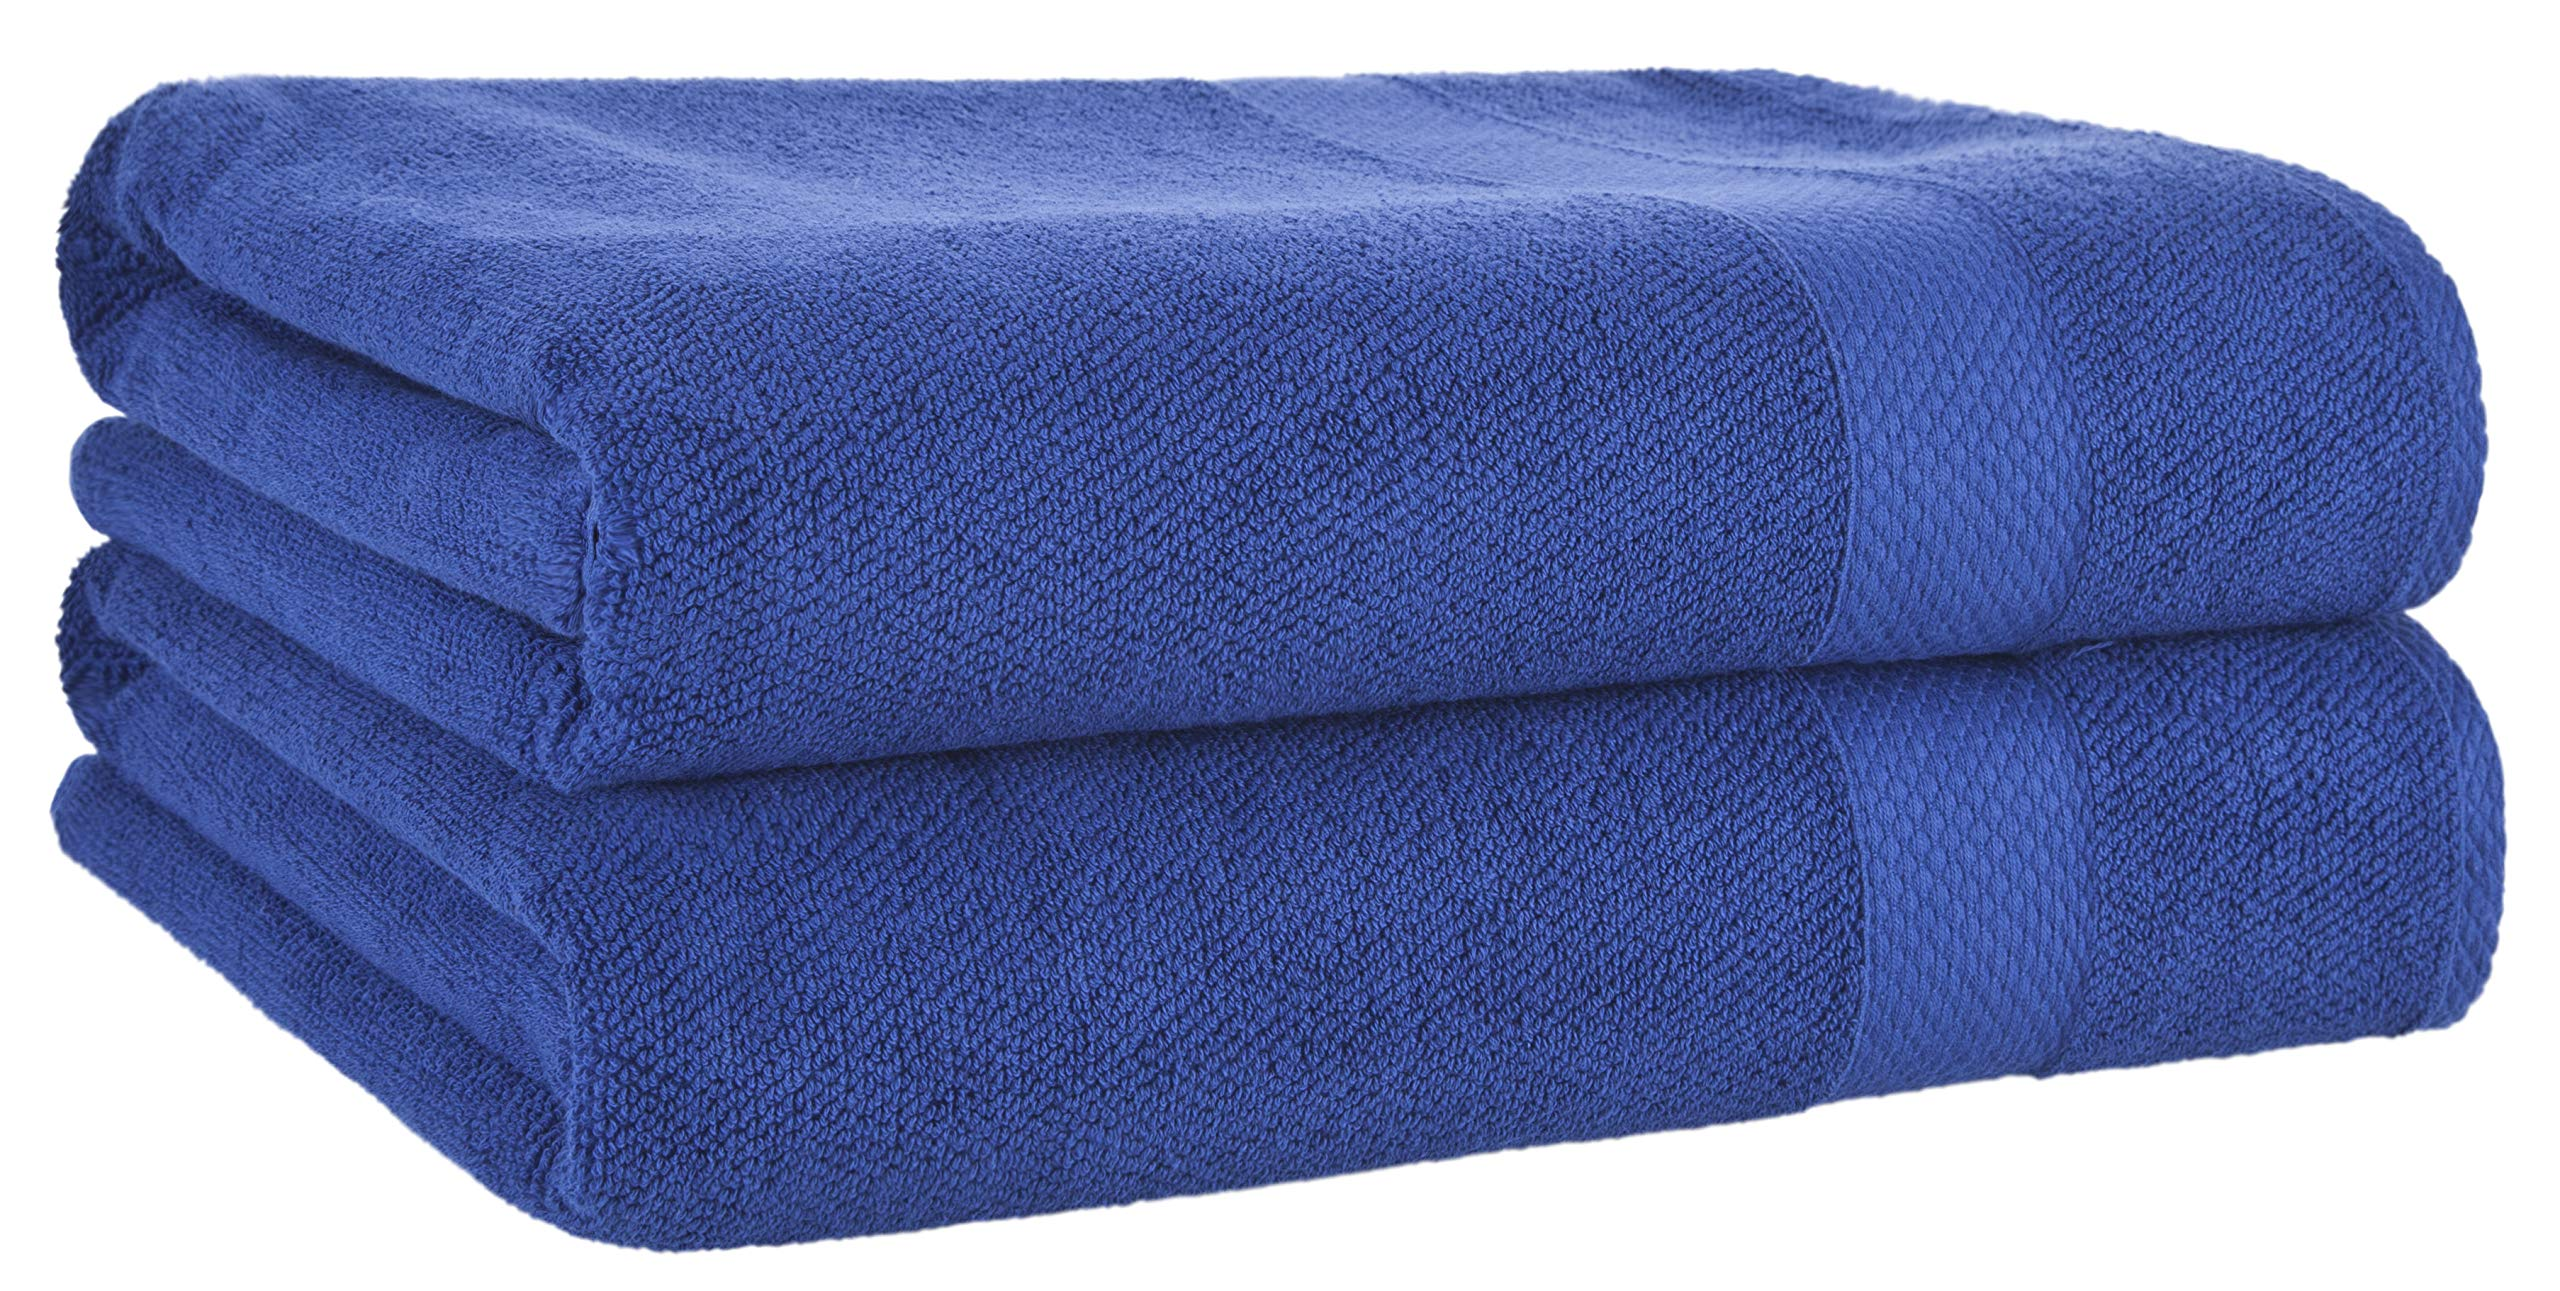 Bath Sheets Blue 2-Pack Set - 100% Cotton Ultra-Absorbent Oversized Extra Large Bath Sheet - Luxury Quick Dry Jumbo Size Bath Towels - Premium Quality Hotel Collection Big Soft Towels (35x70 inch)